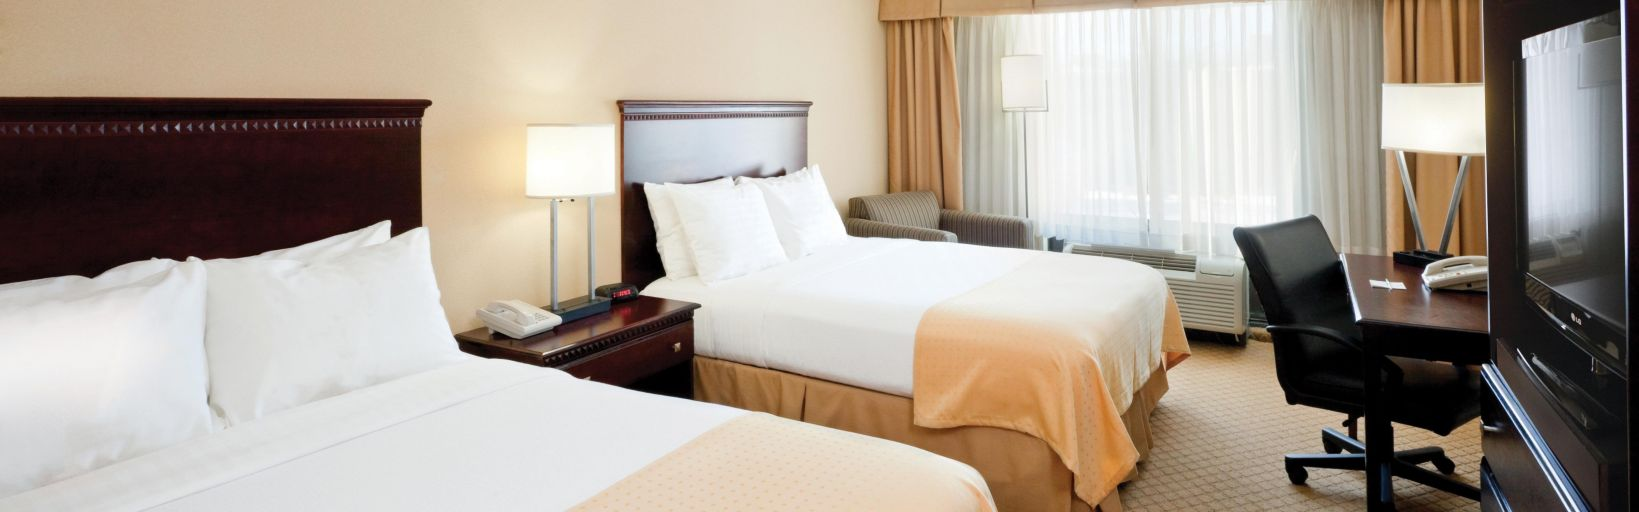 Holiday Inn East Windsor Hotels Cranbury Area Hotel Room Rates